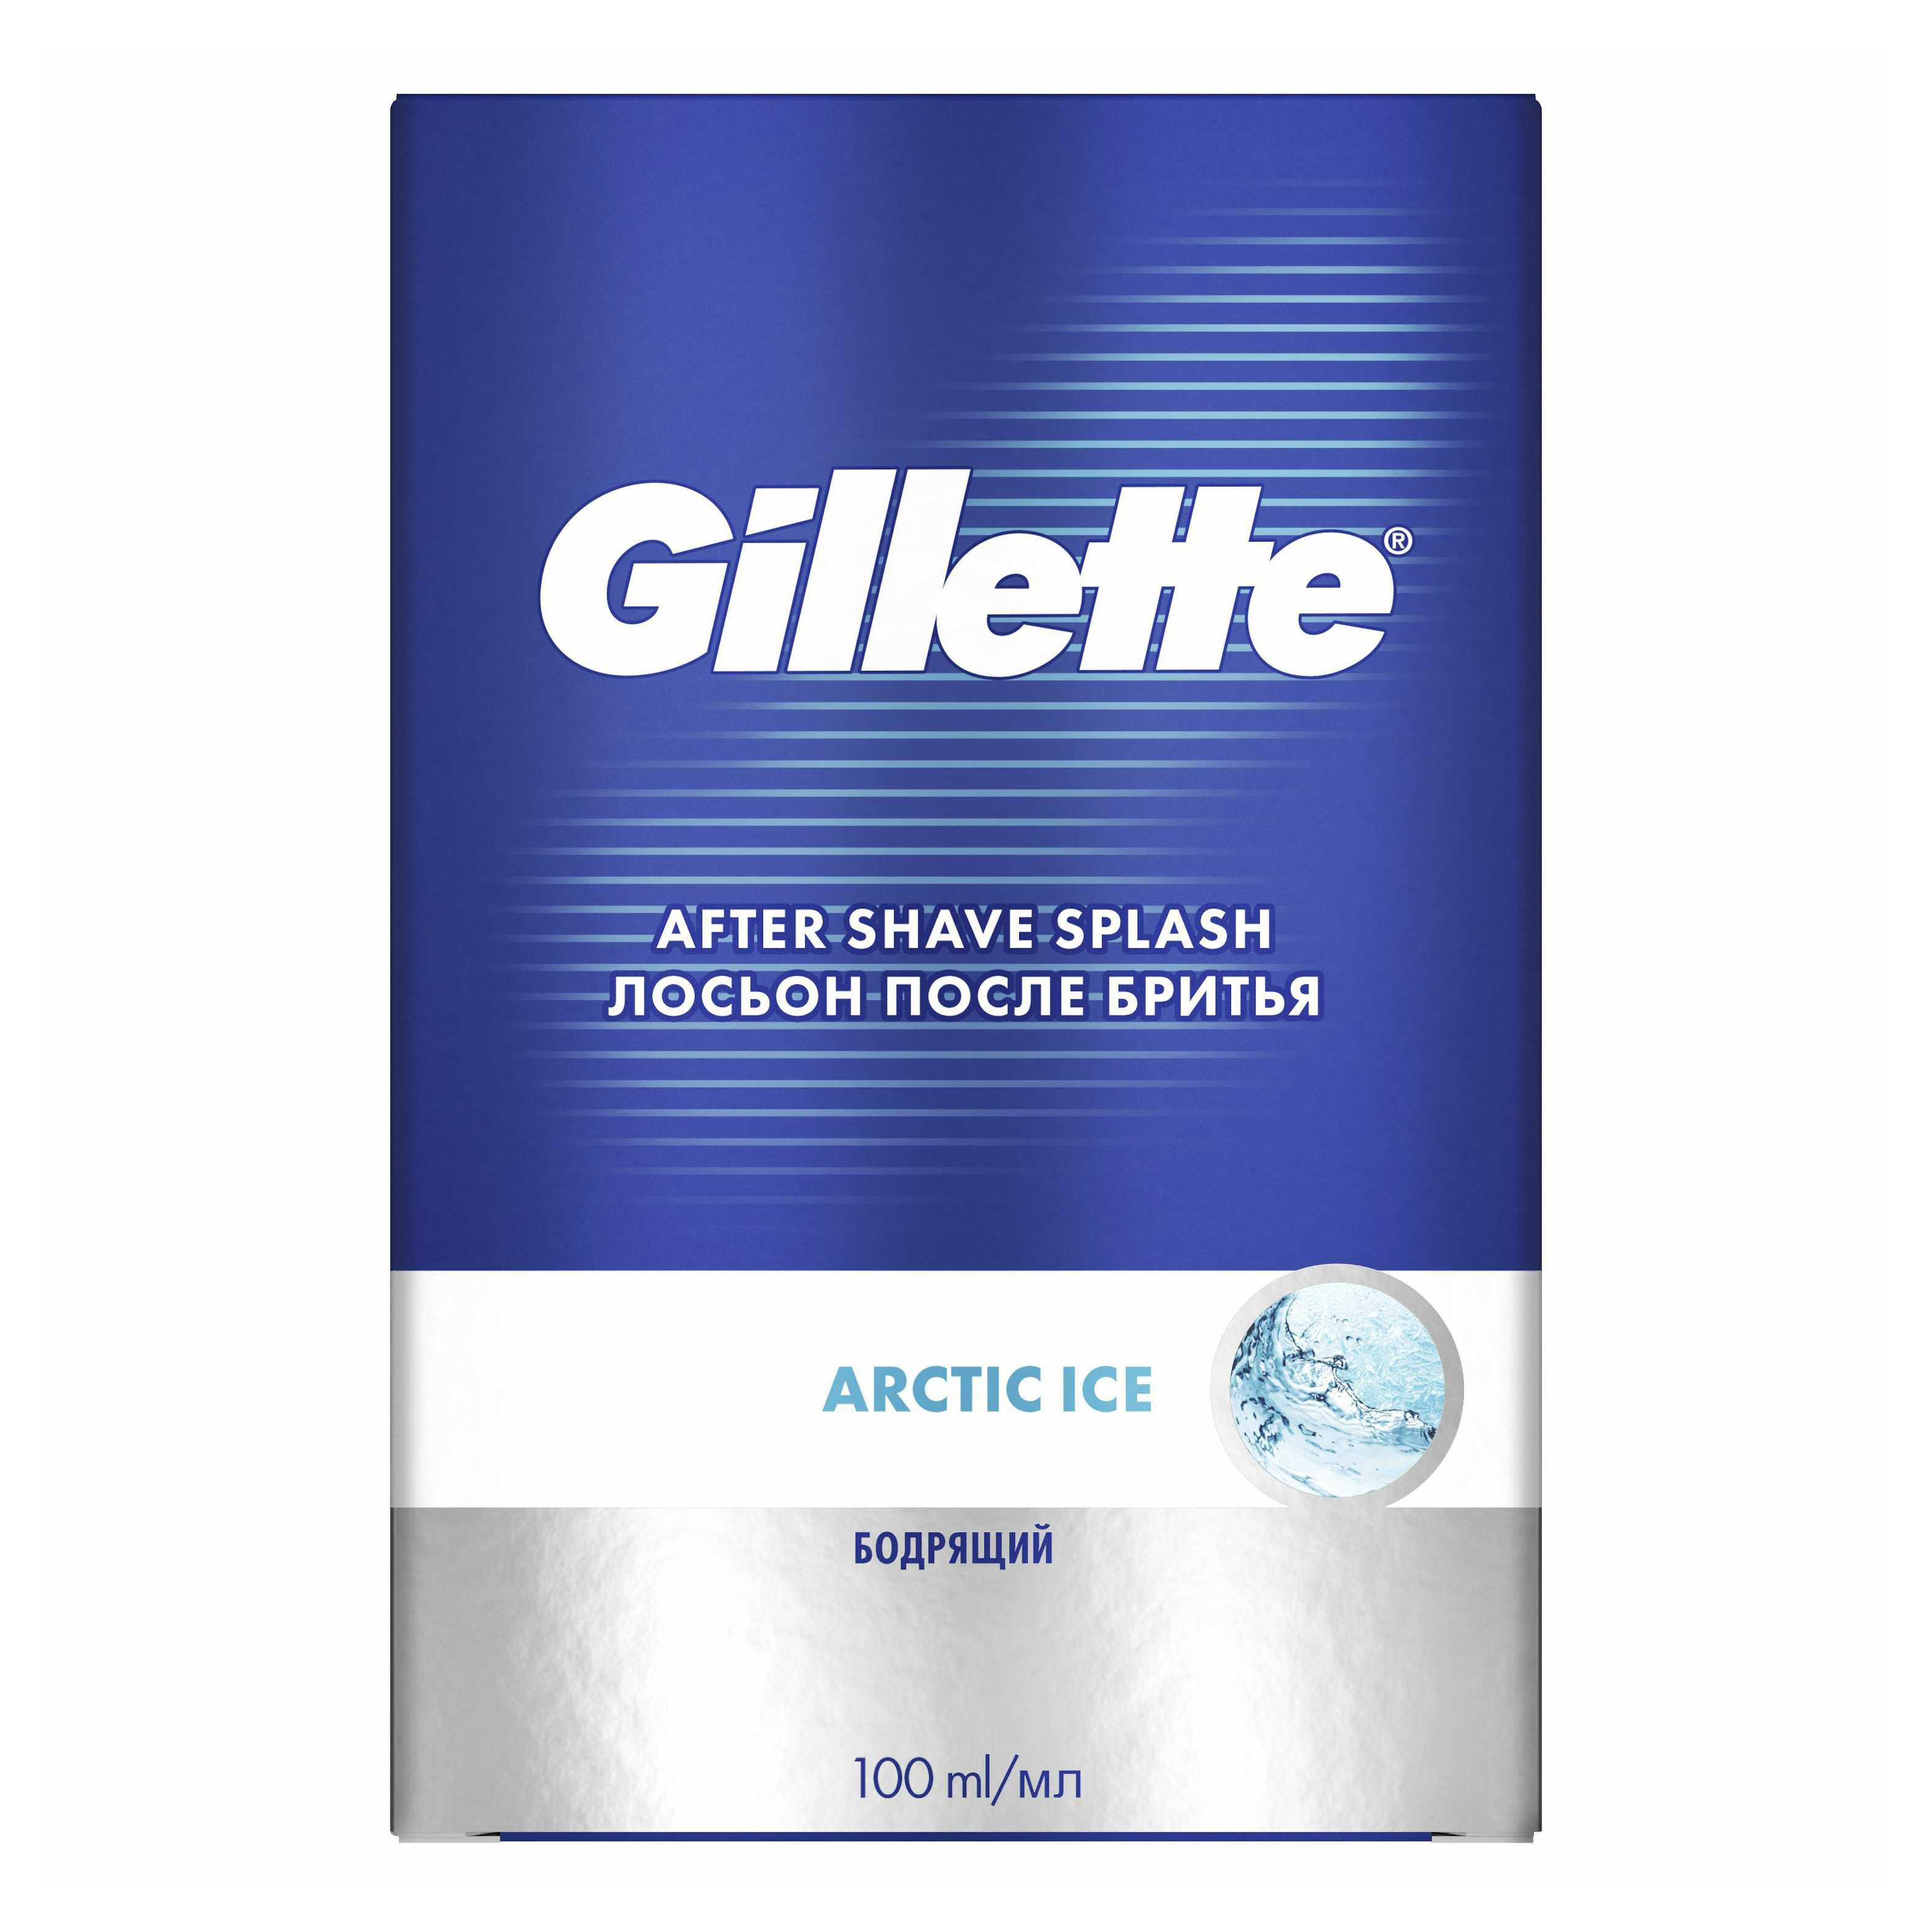 Лосьон после бритья Gillette Series Arctic Ice